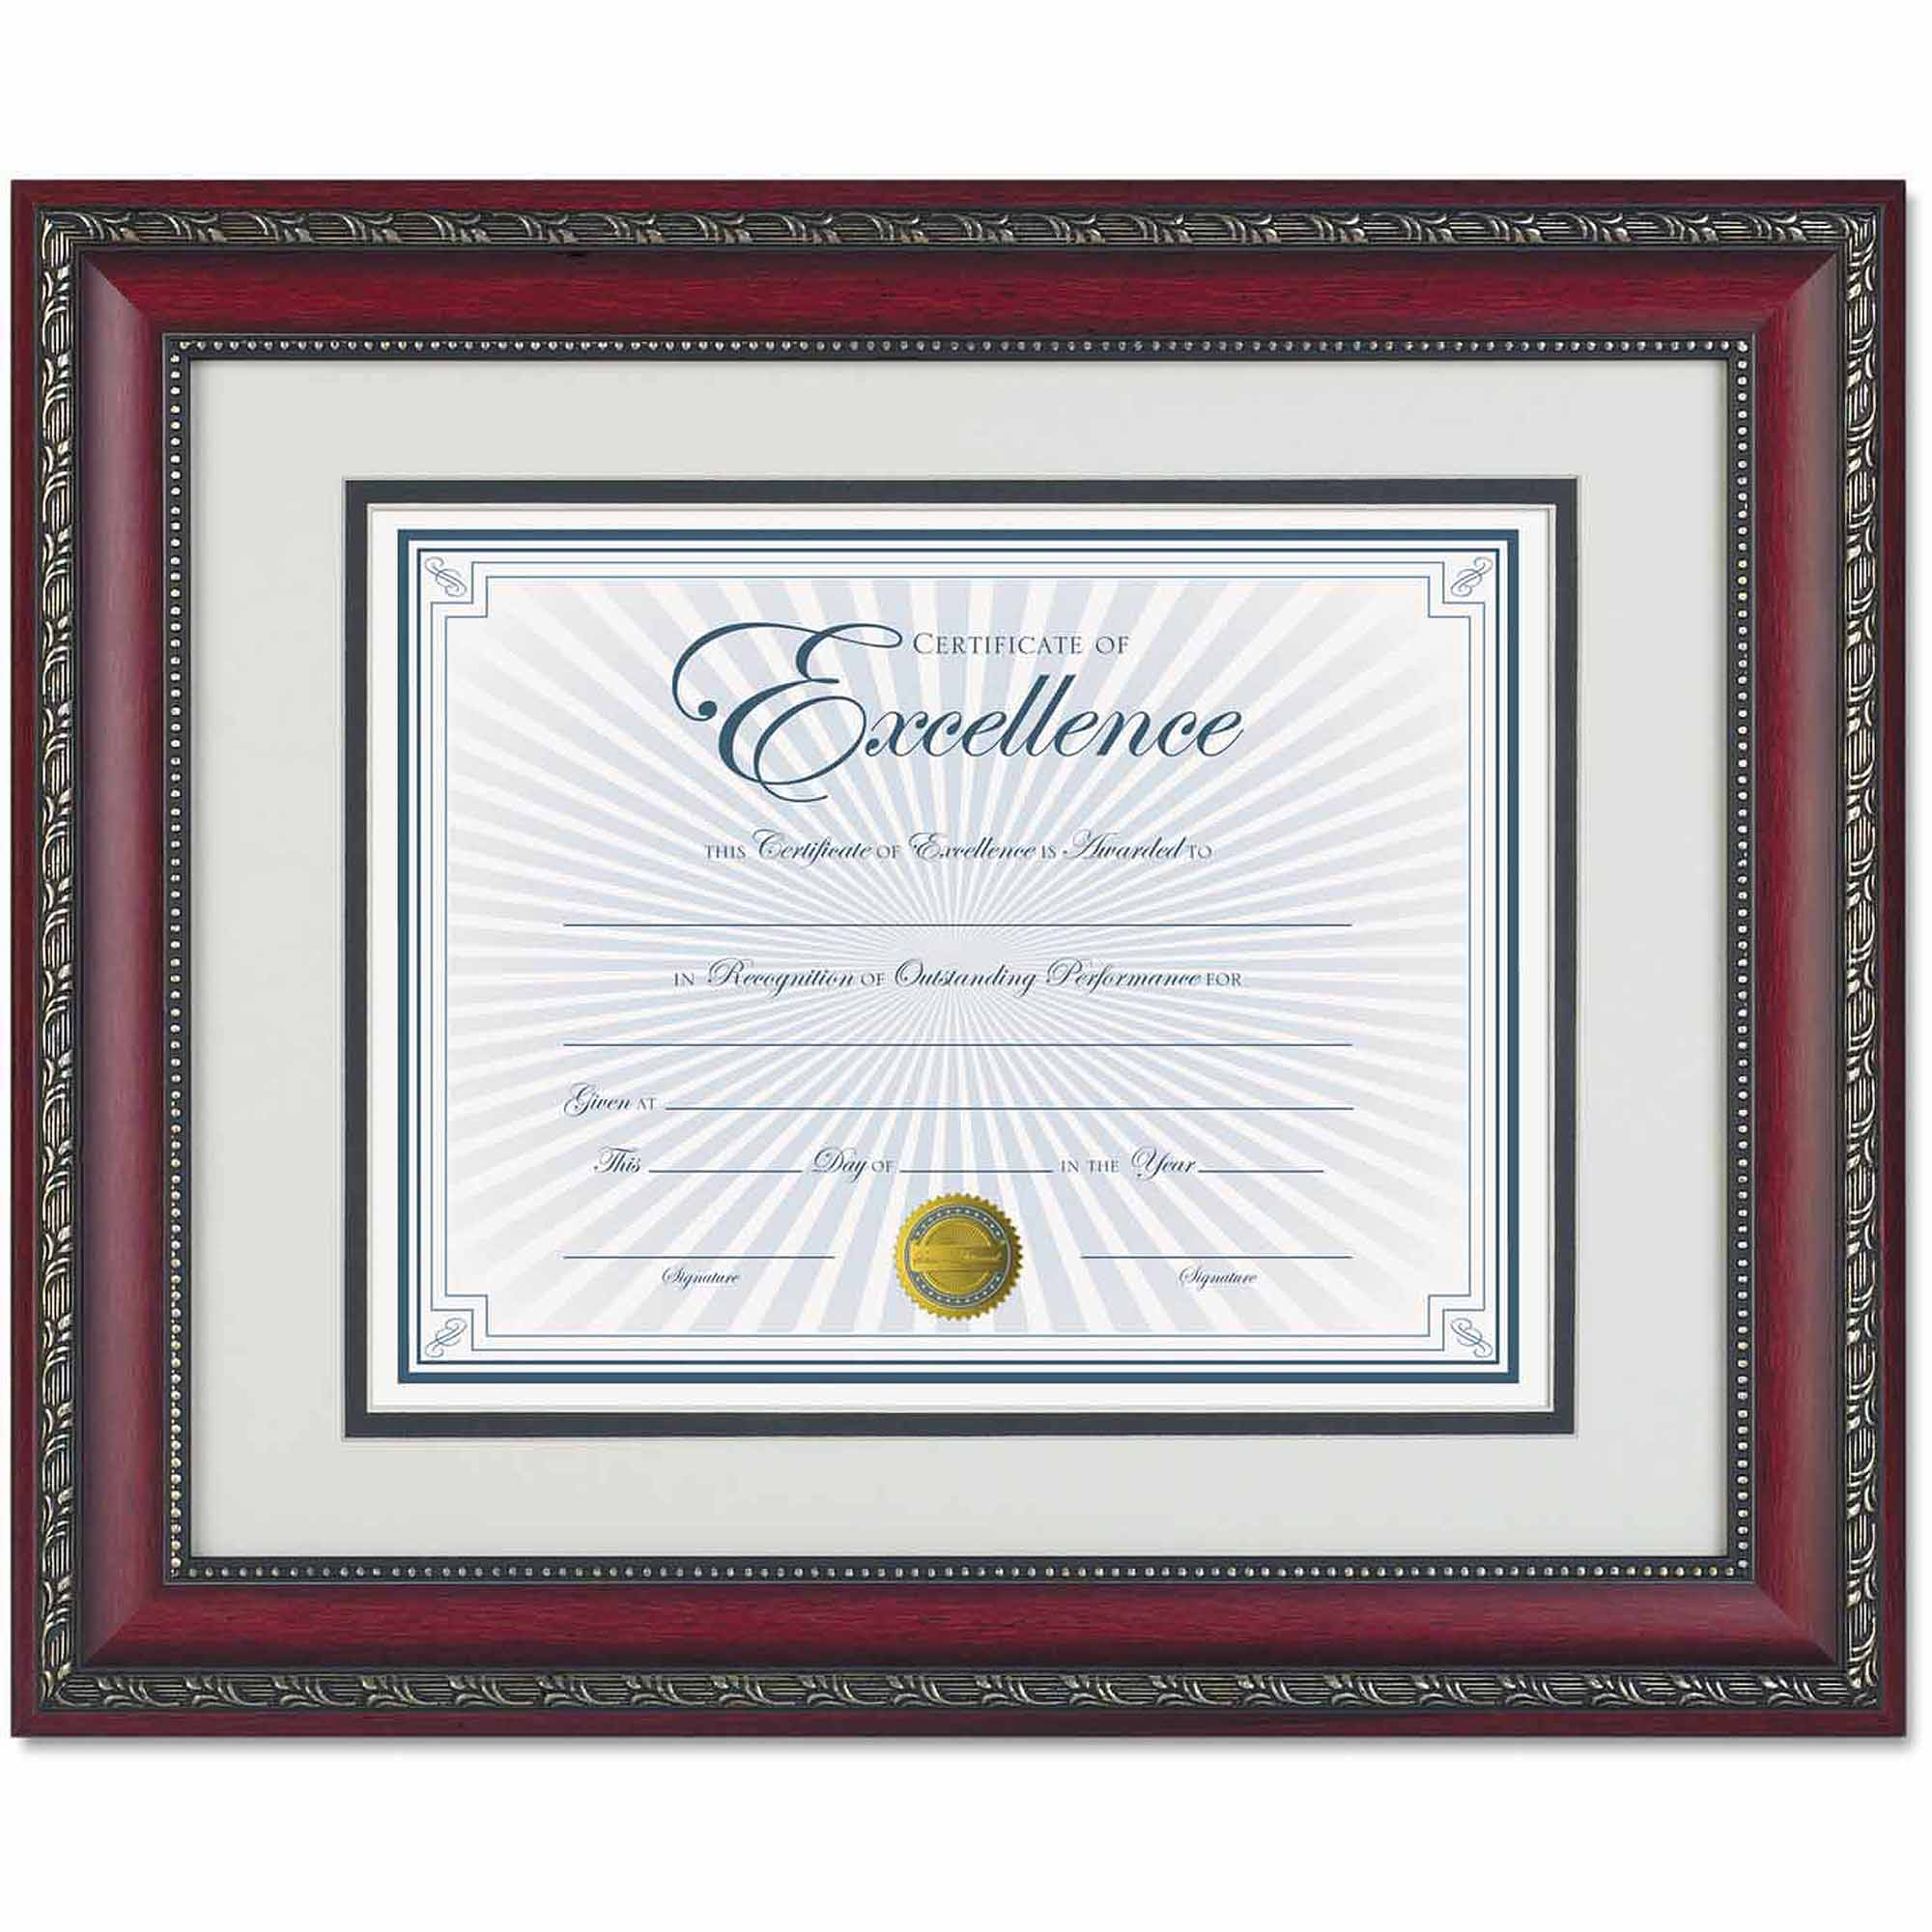 "DAX World Class Document Frame with Certificate, Rosewood, 11"" x 14"""